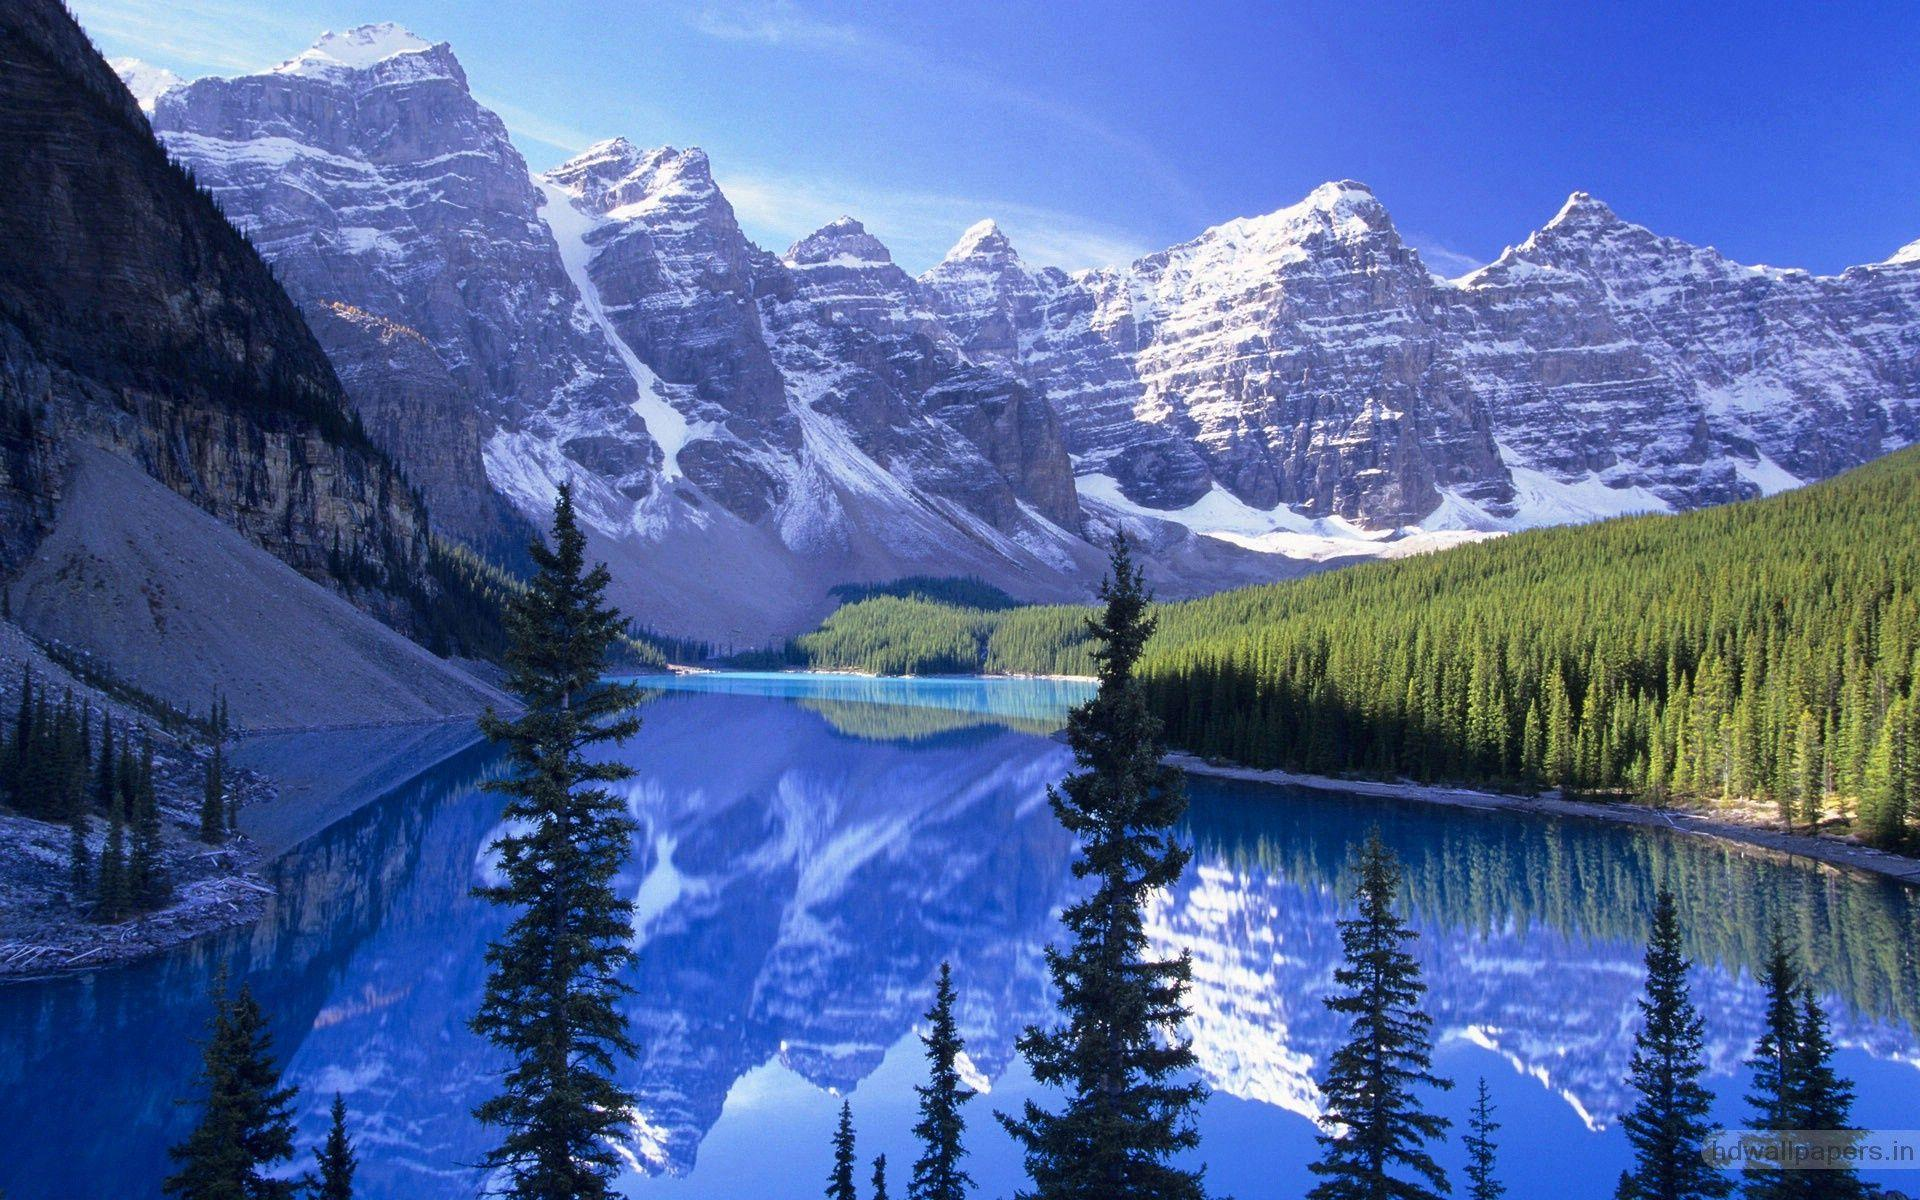 Alberta National Park Canada Wallpapers in jpg format for free download